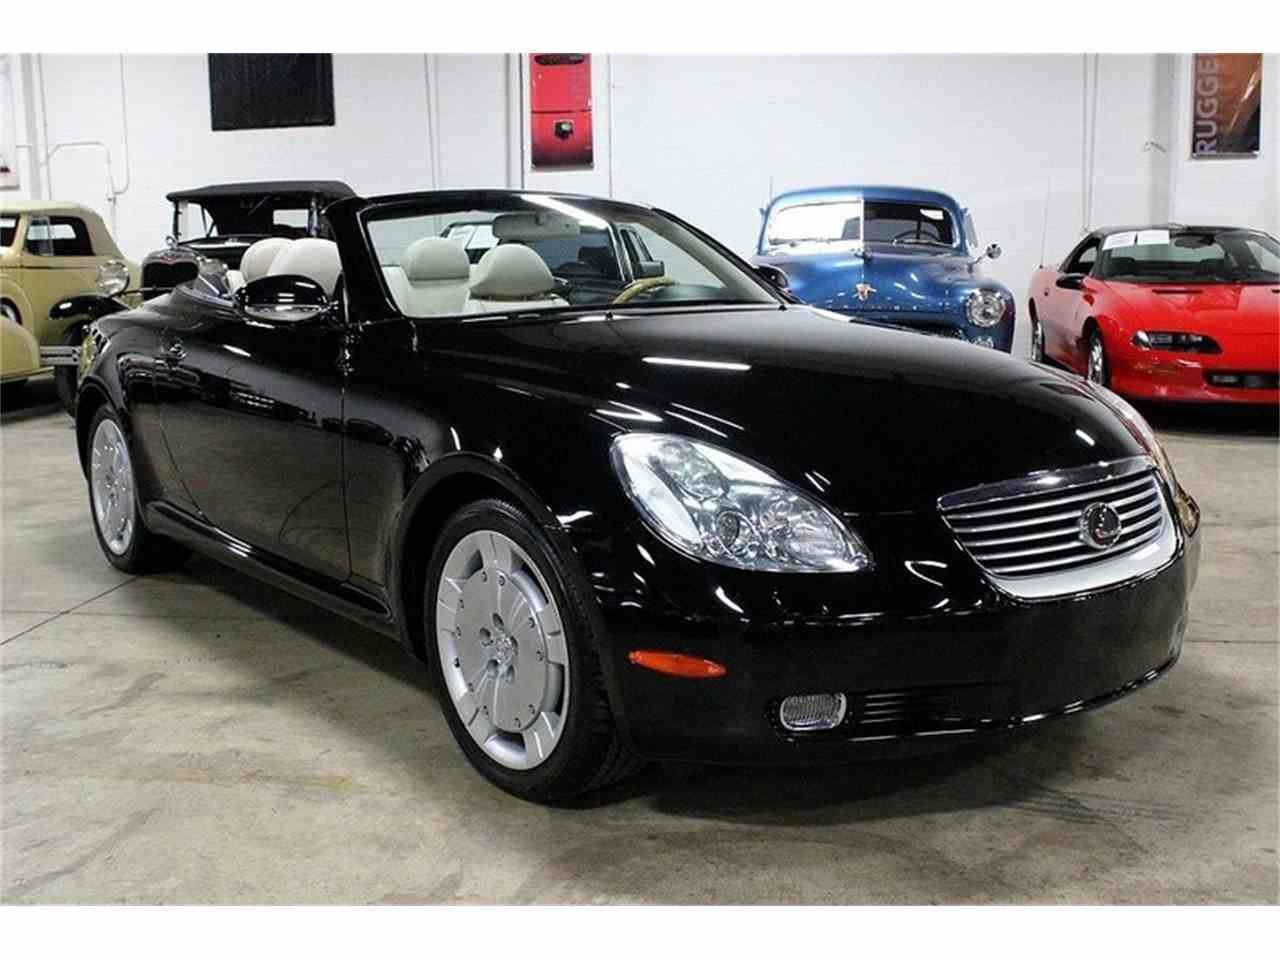 2003 lexus sc430 for sale cc 968032. Black Bedroom Furniture Sets. Home Design Ideas